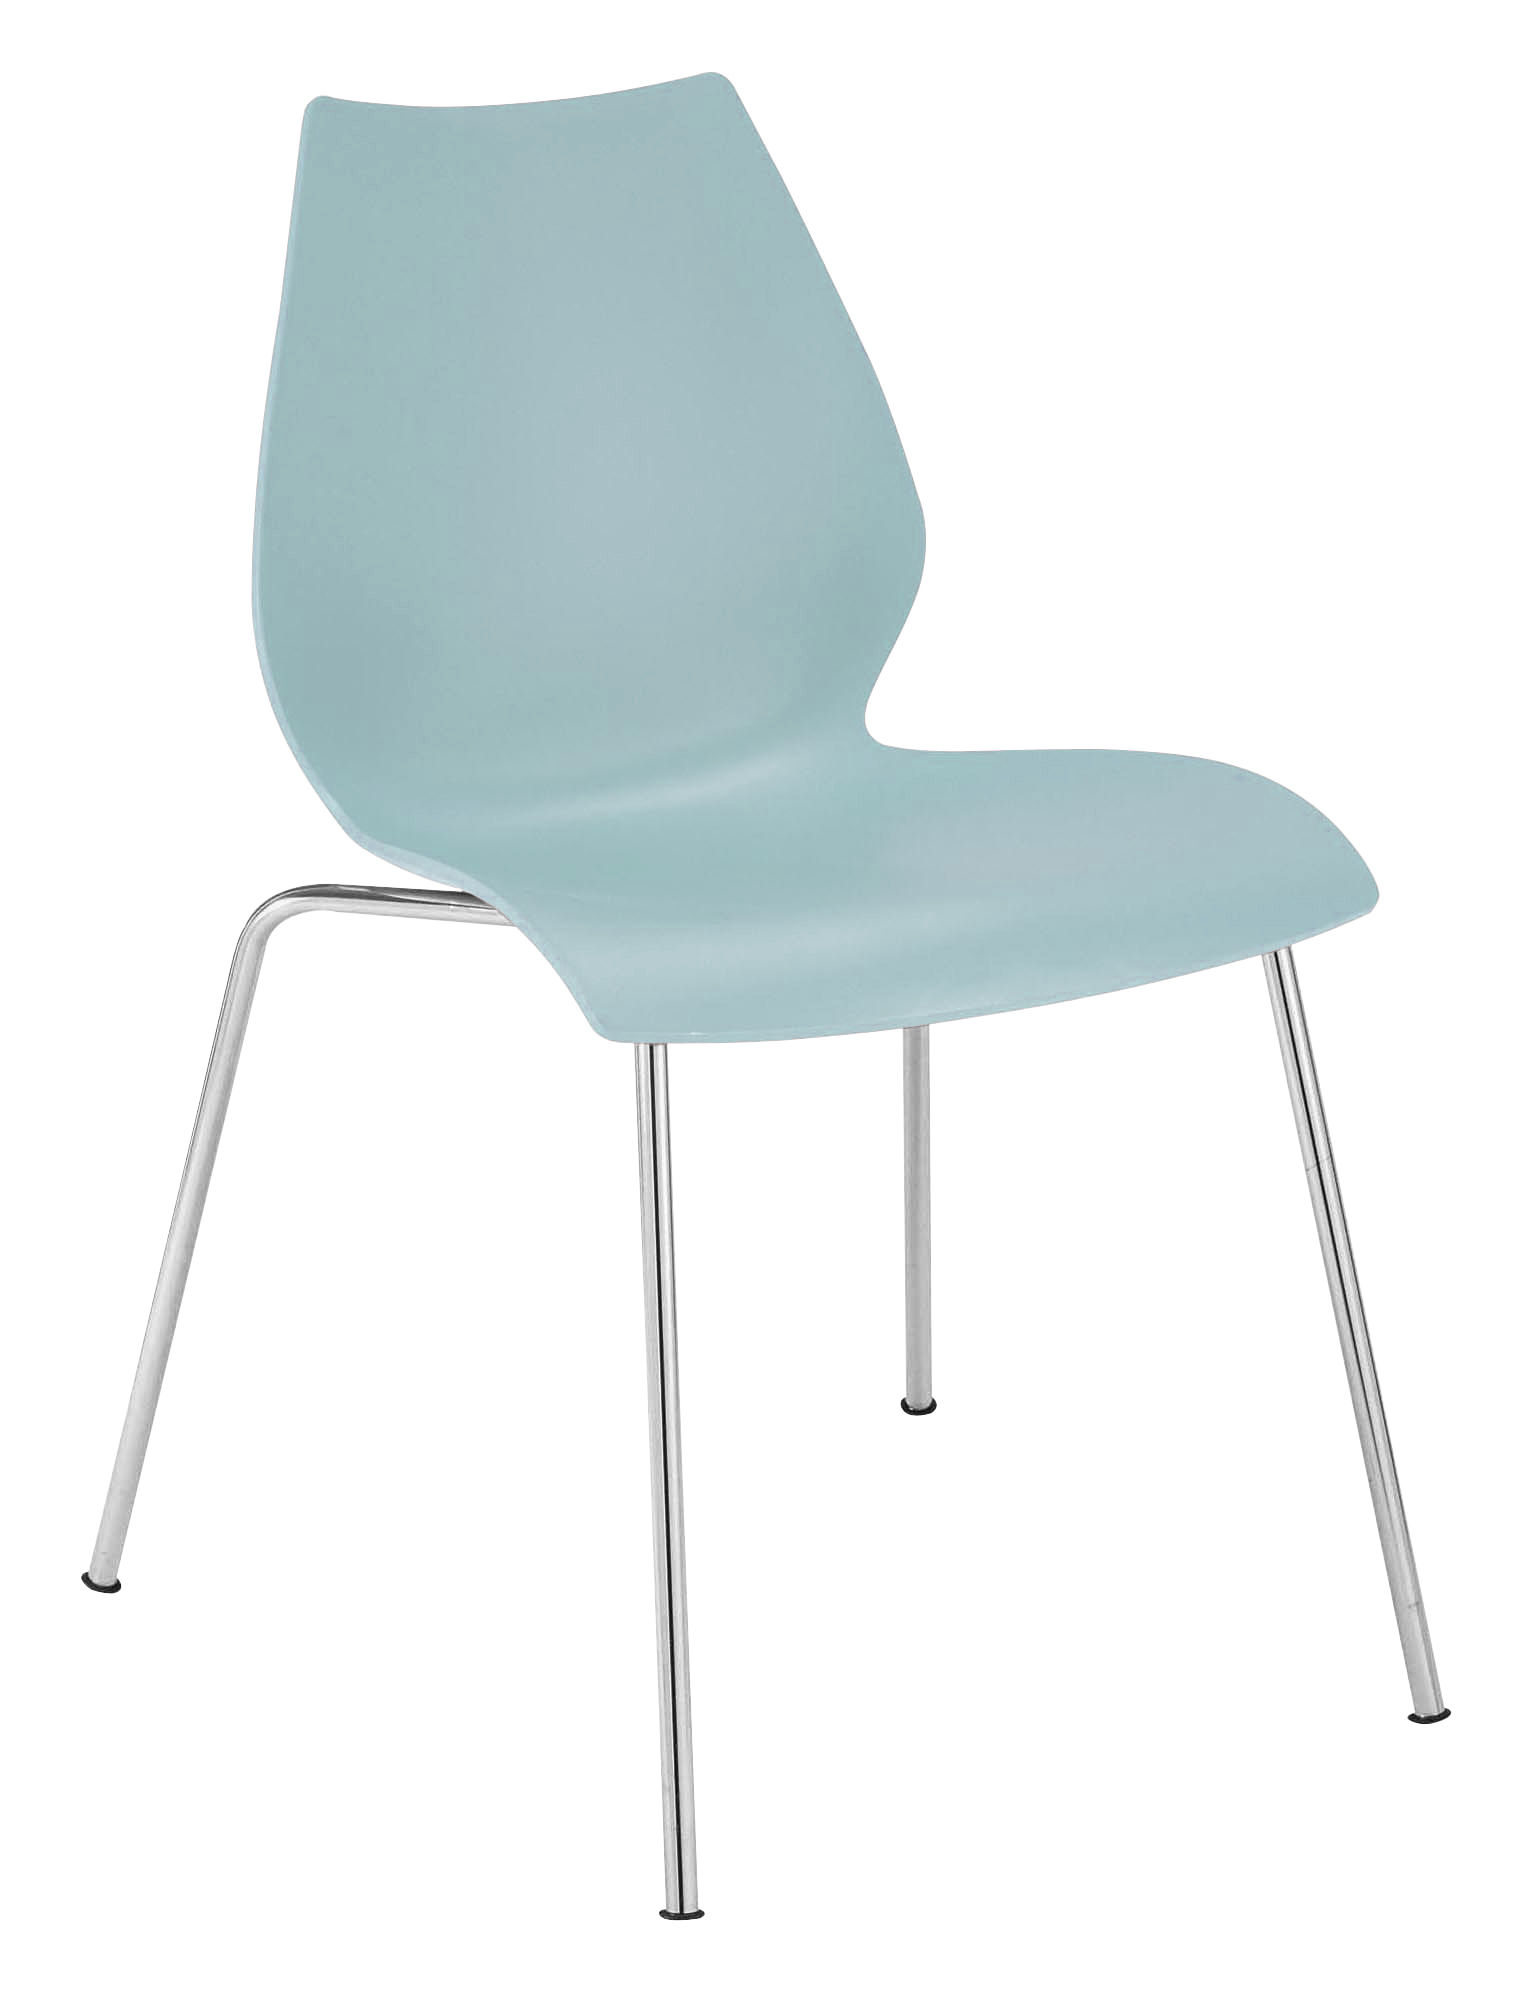 maui stackable chair plastic seat metal legs grey blue